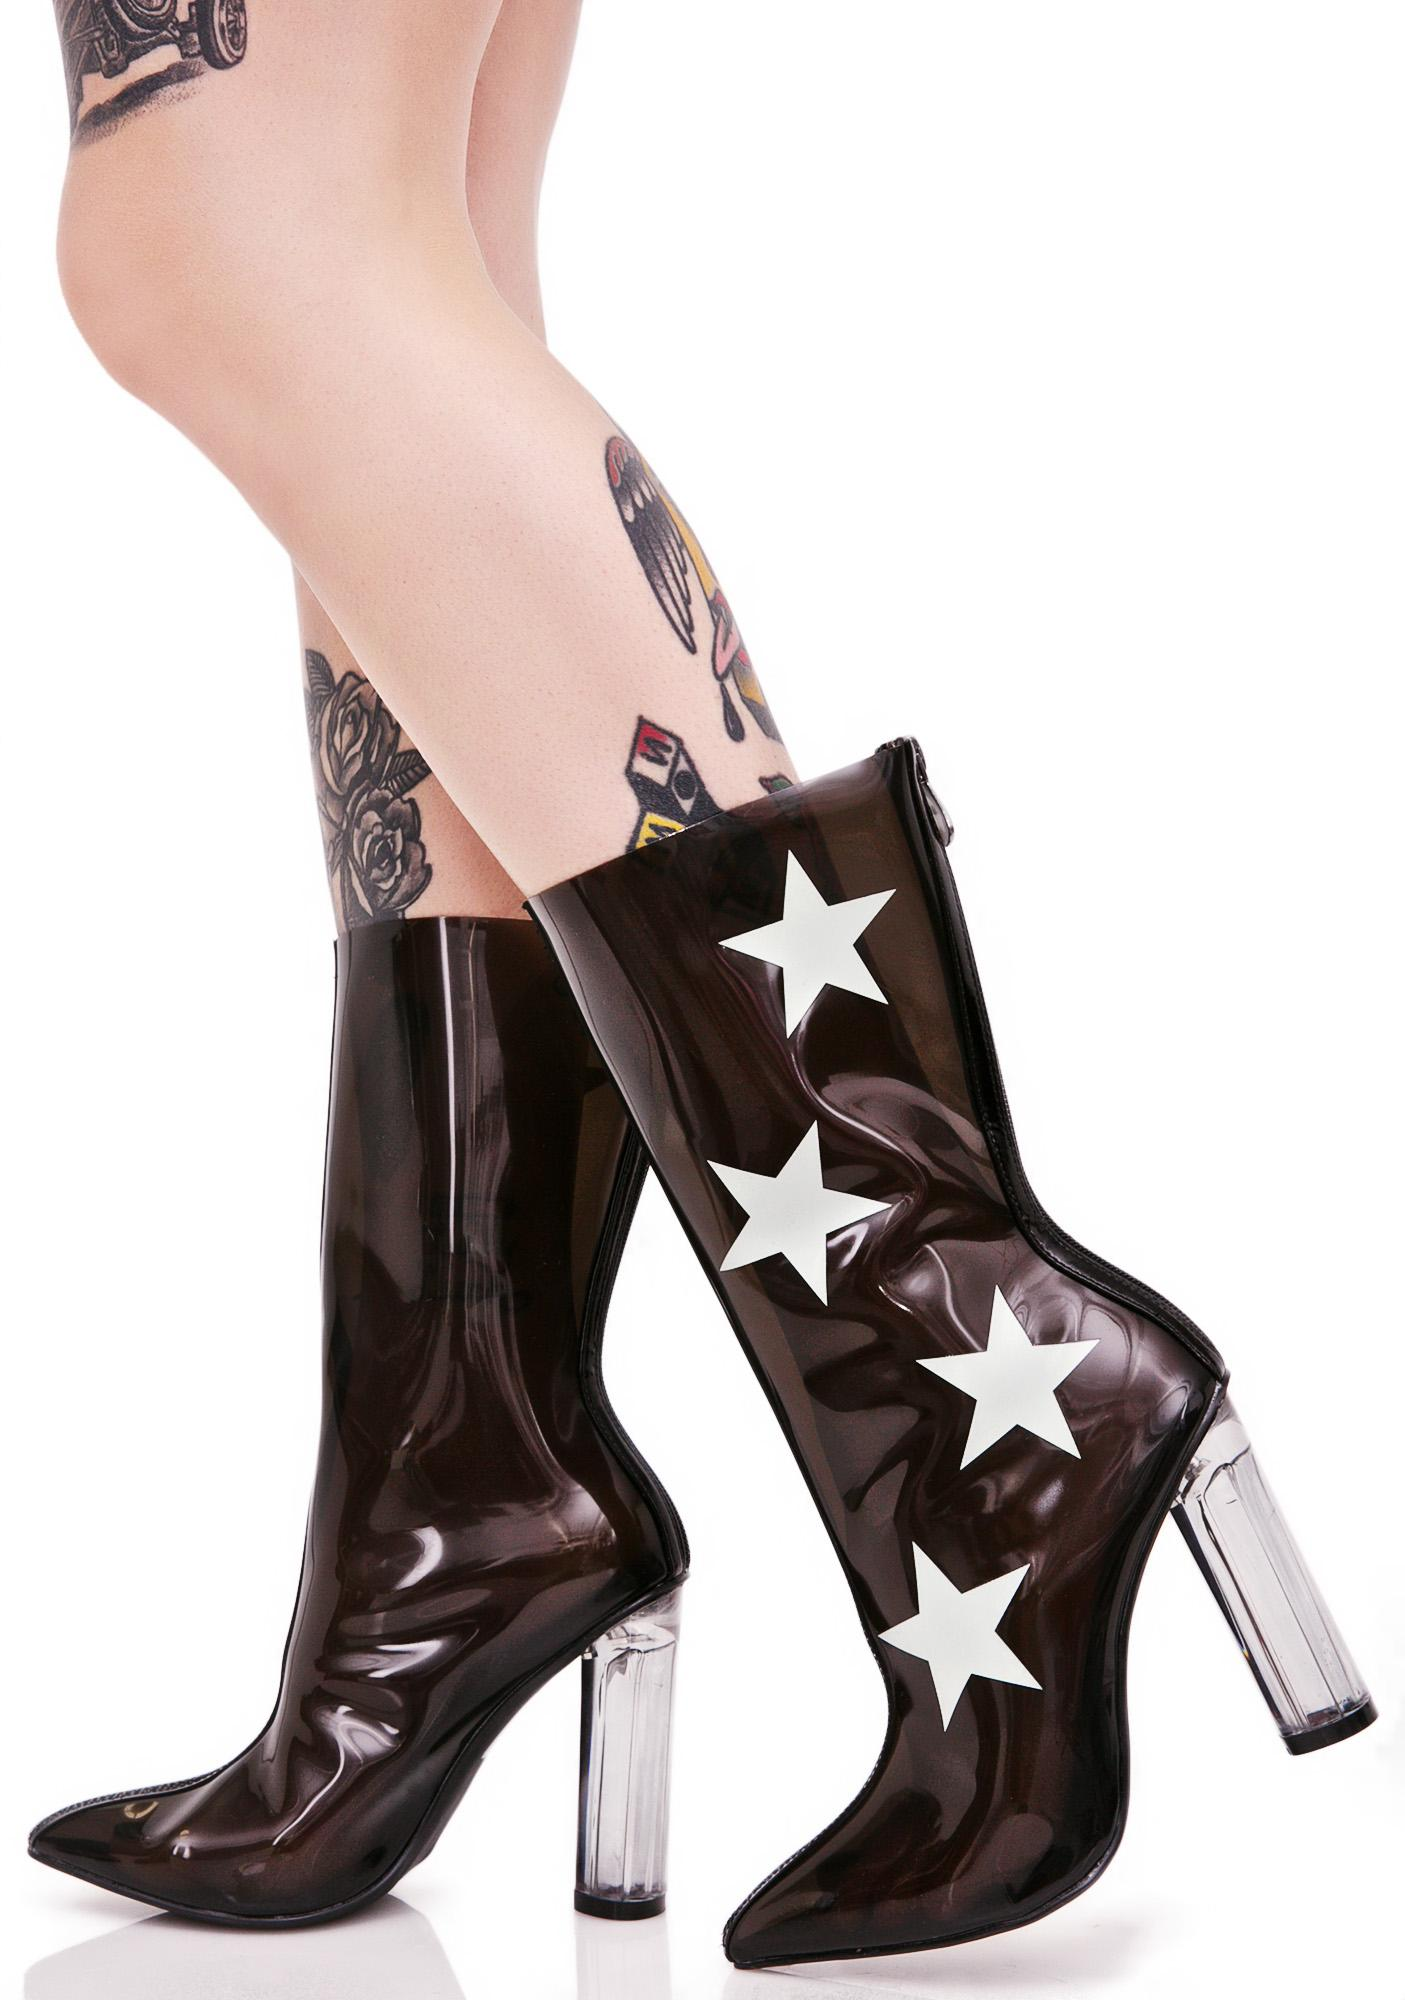 Glowing Vesta Clear Boots